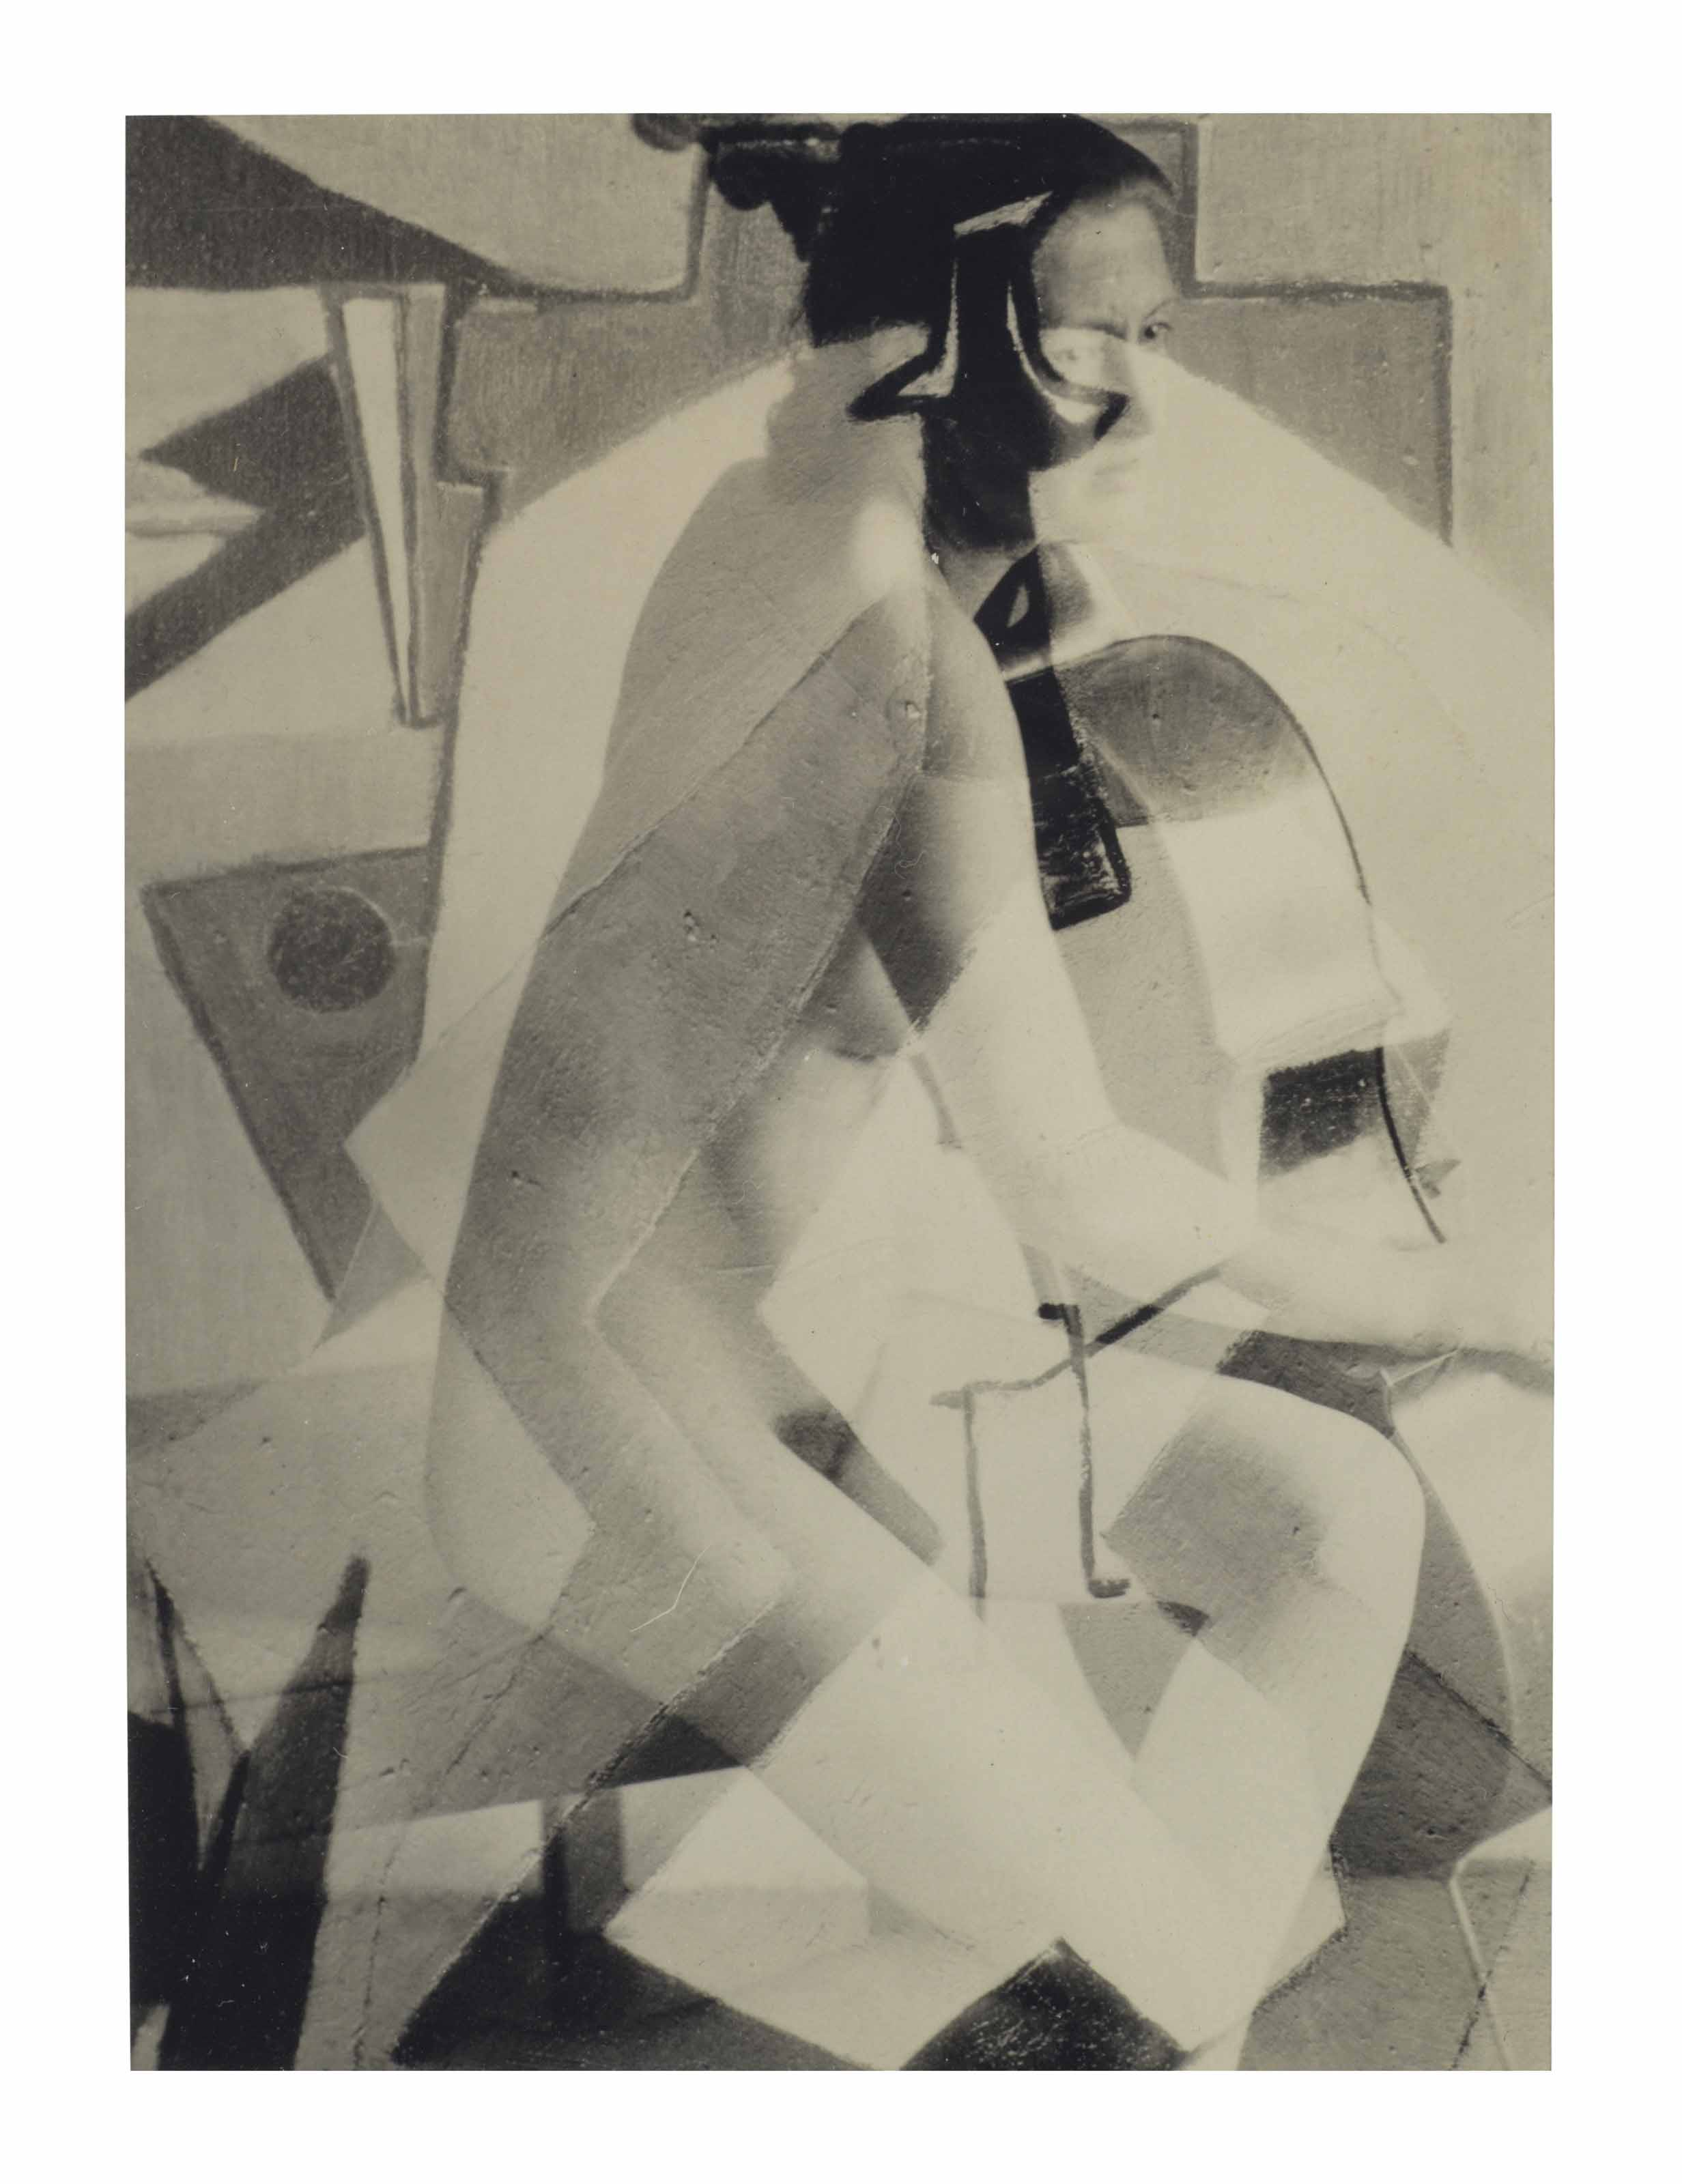 Rosalind Fuller with Cello, c. 1935